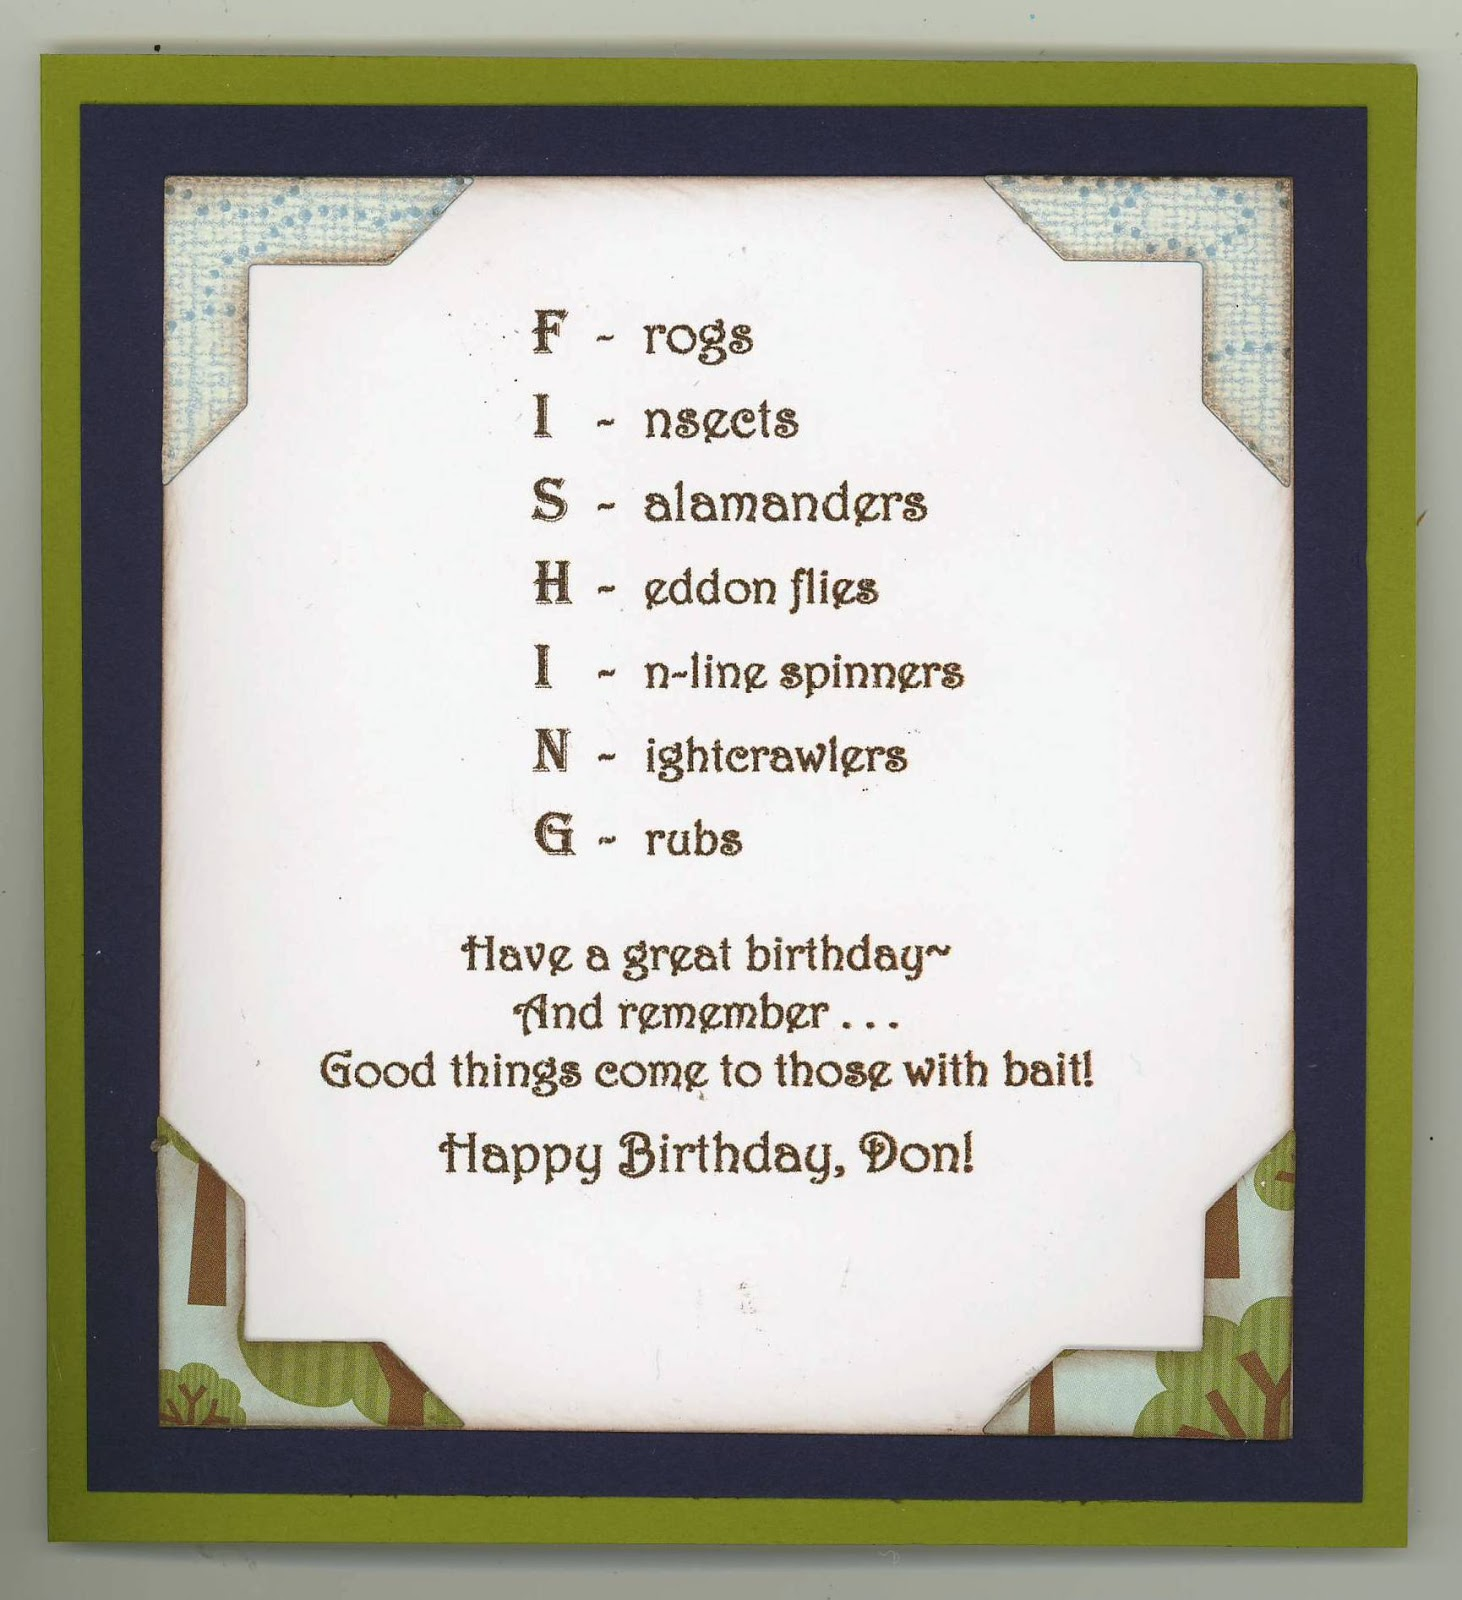 At The Stage In Birth Of One My Card I Turn To Inside Create A Design That Compliments Outside And Make Verse Goes With